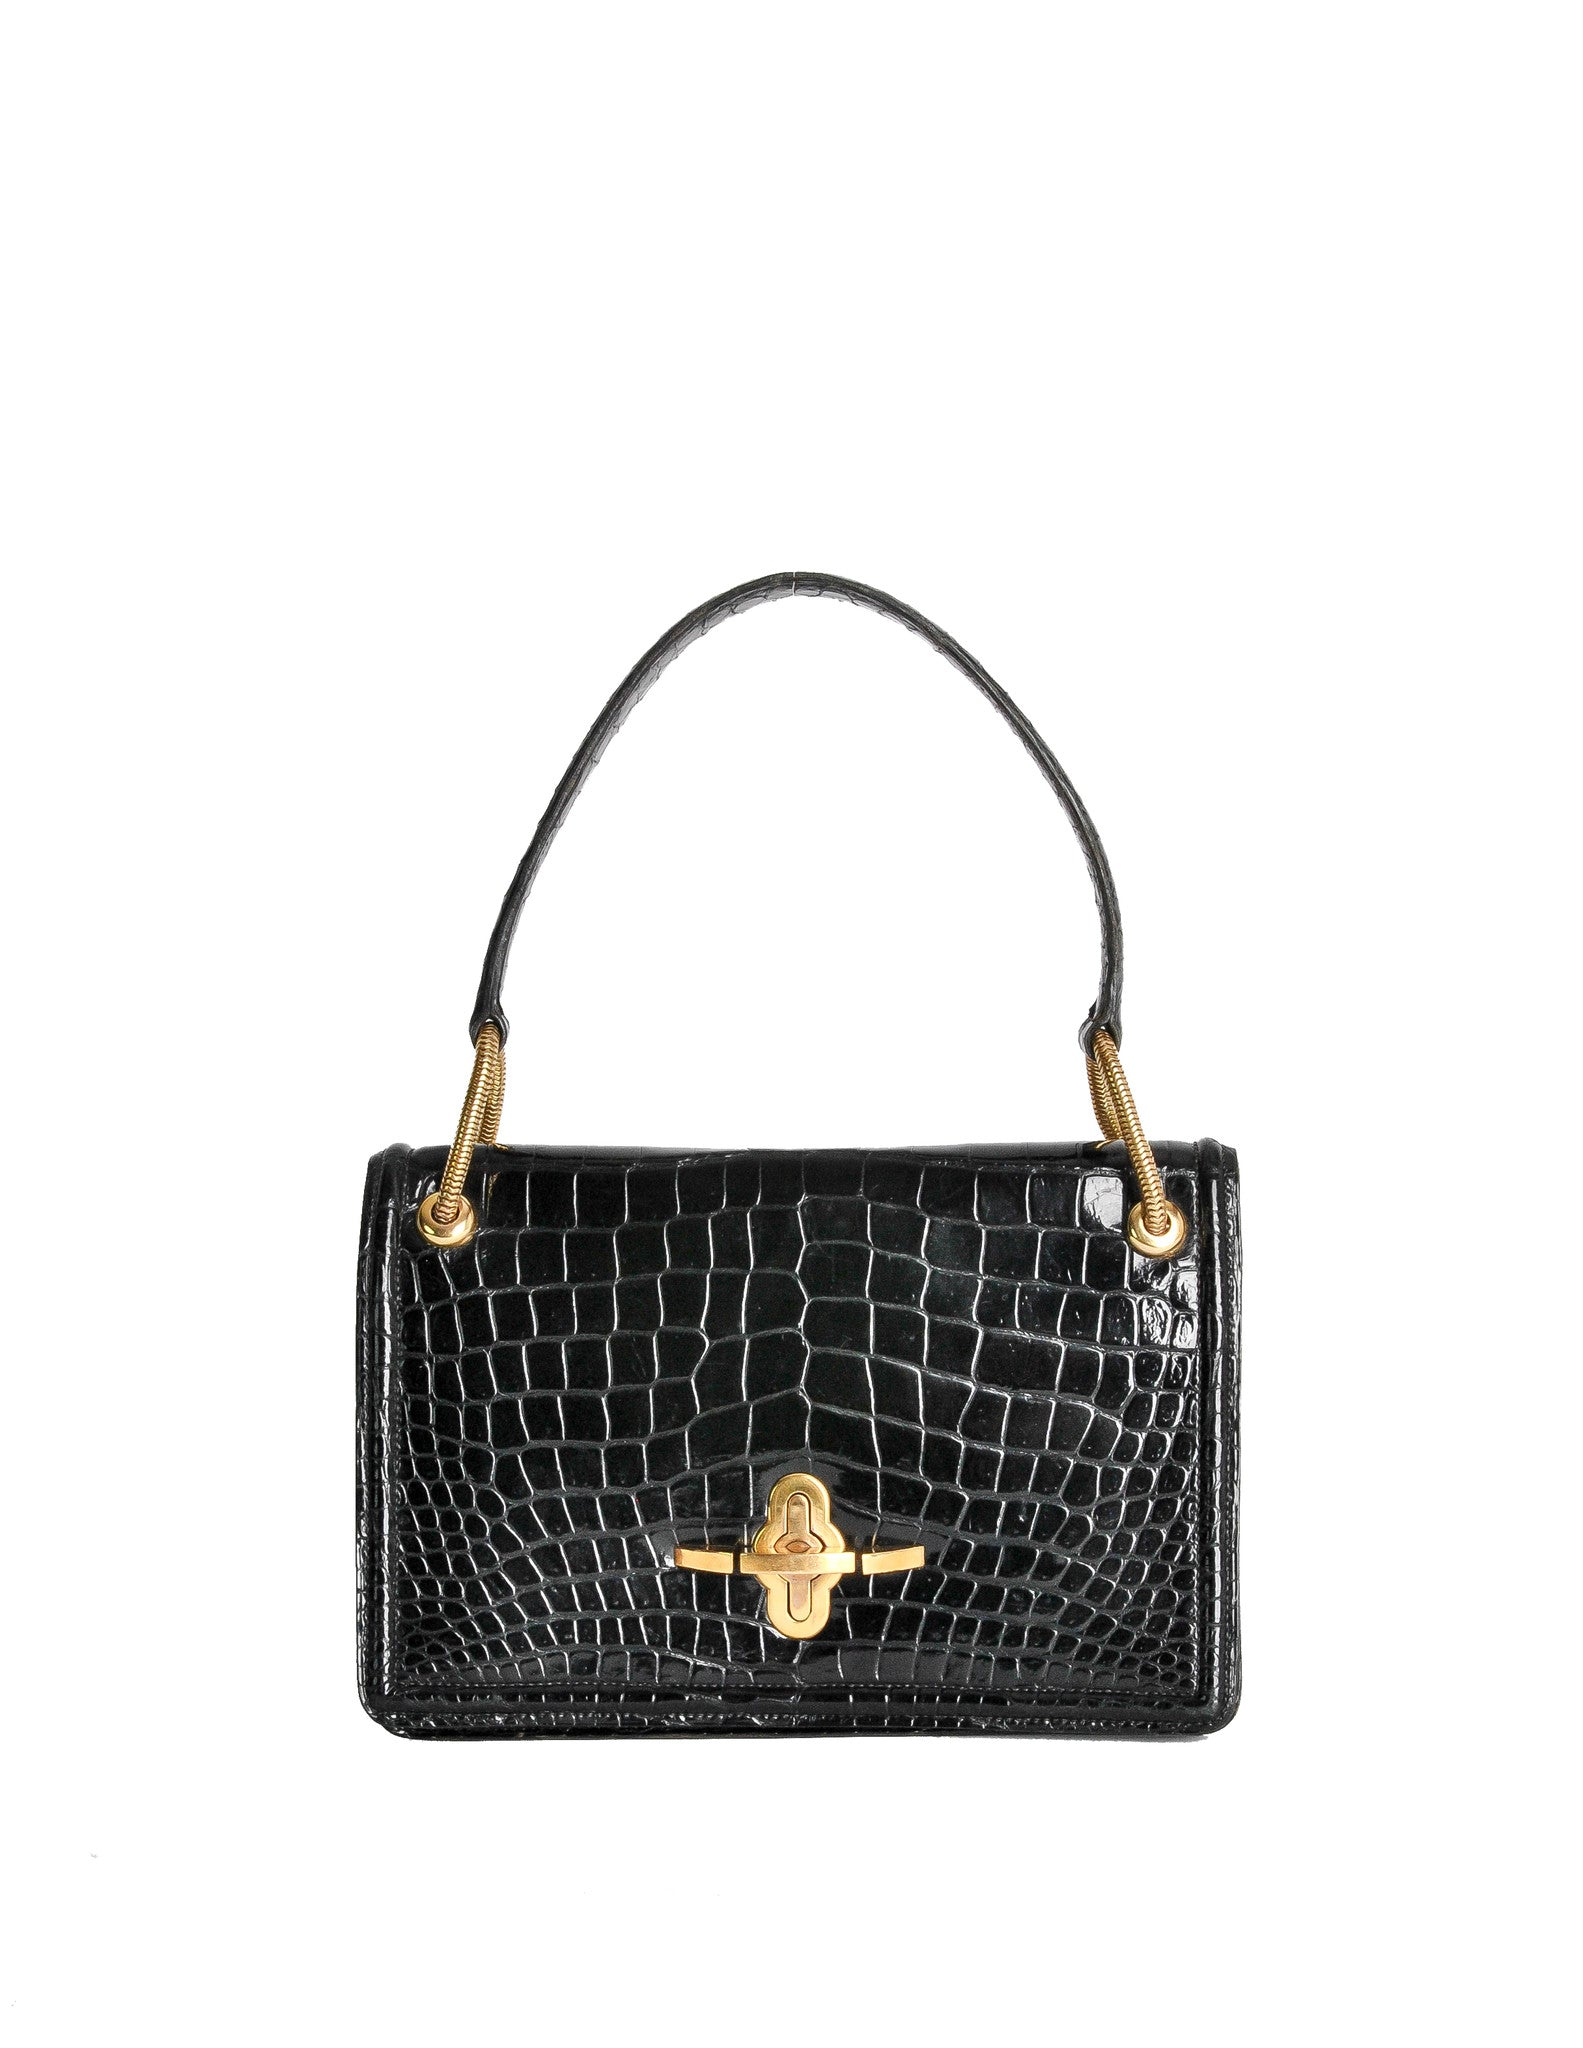 Crossbody Women's Gold Crocodile Evening PIJUSHI Shoulder Black Bags Clutches Bag Handbags Have You Tried Chewable Ice Cream? Sep 14, Jimmy Kimmel Bought a PB Mixer on Amazon That You'll Want Too Sep 13, Genuine For Vintage bucket Tote Bag Drawstring bag leather Women Brown Bucket SrUxTRSw.